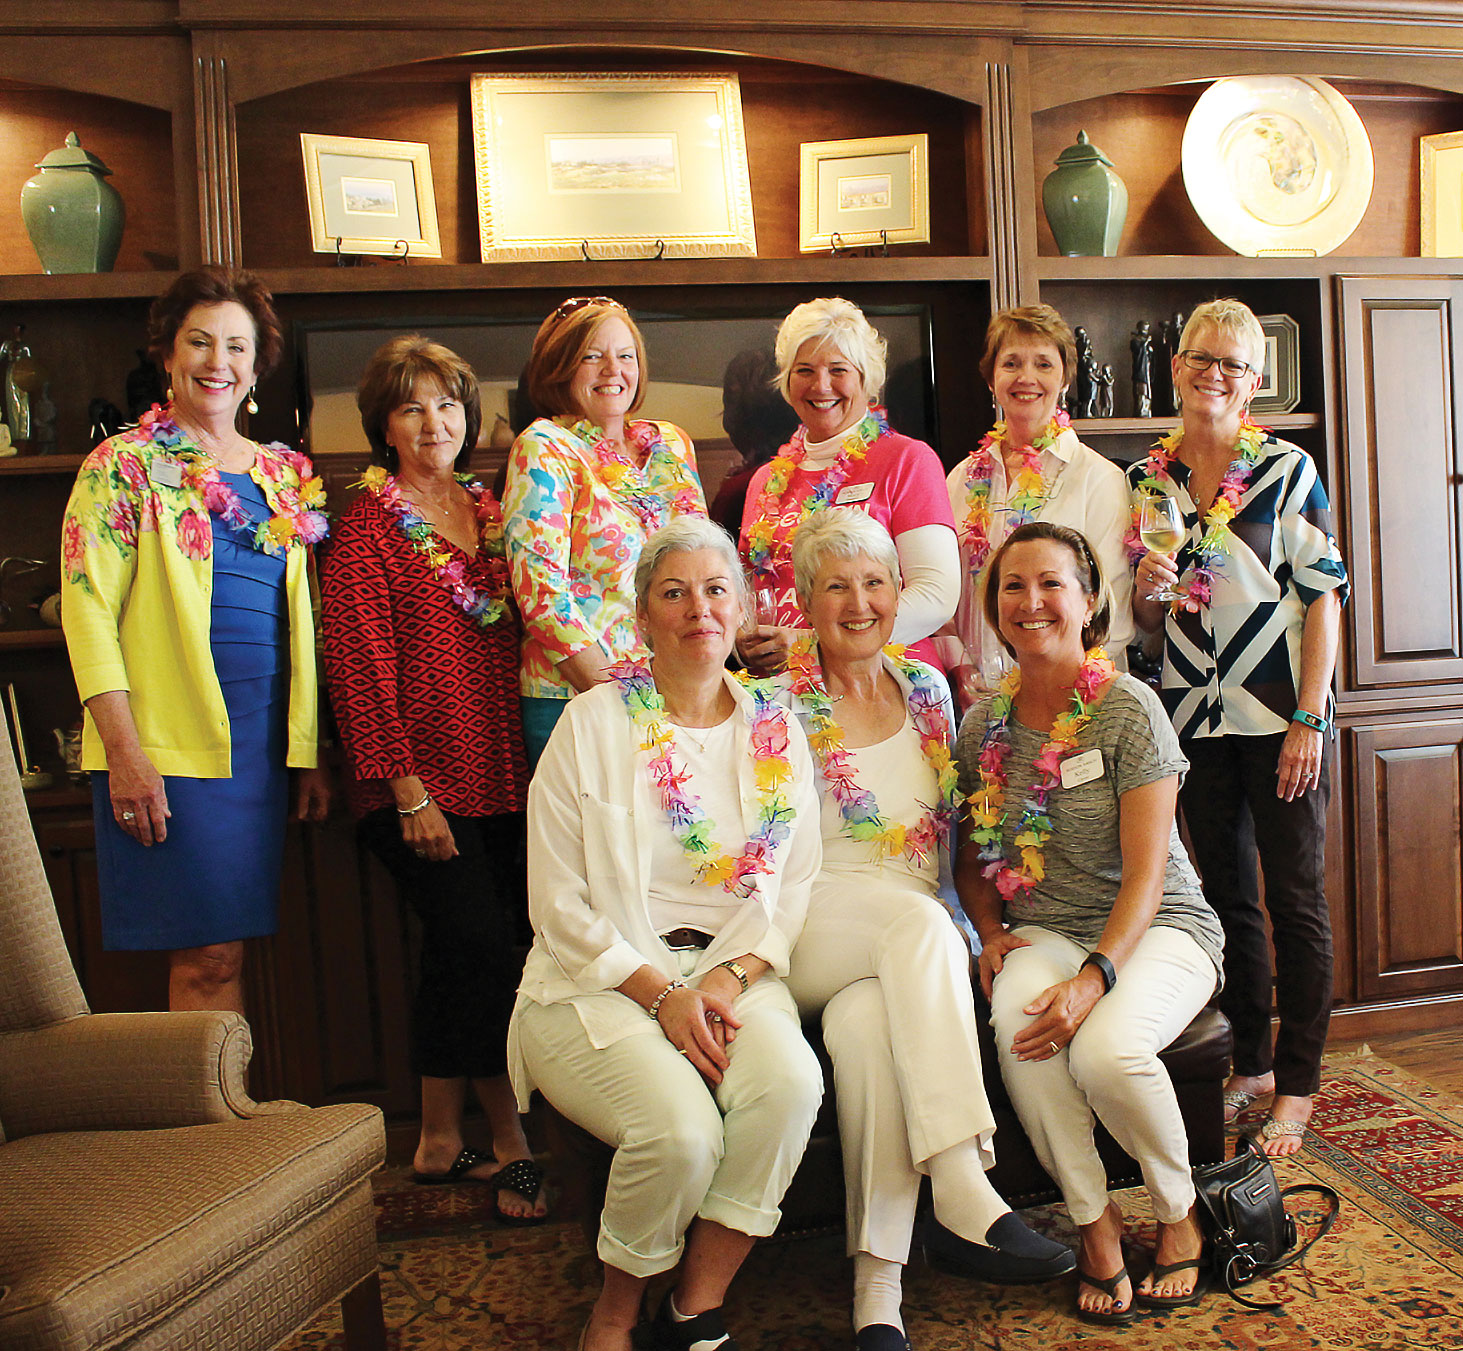 New members, back row: Ann Brehm, Judy McDuffie, Kay McKie, Mary Fabian, Jan Humphrey and Patty Stimson; front row: Connie Chapman, Lavelle Carlson and Kelly Close